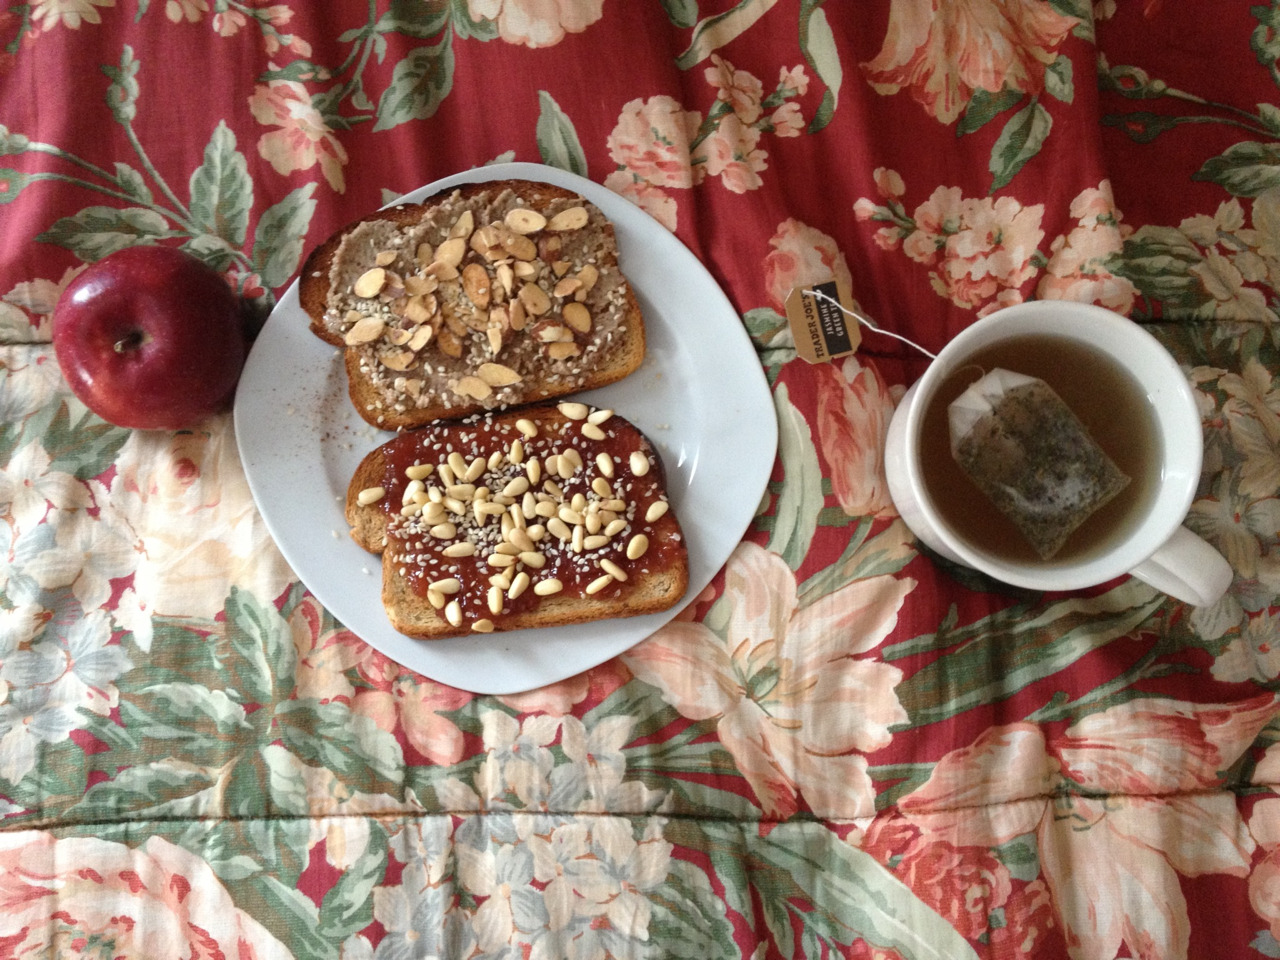 Oh my breakfast okay lets see so we have: rye toast with pecan butter cinnamon slivered honey roasted almonds and sesame seeds on one slice then raspberry peach champagne jam with pine nuts and sesame seeds on the other, an empire apple, and jasmine green tea with orange blossom water and honey way to start the day~